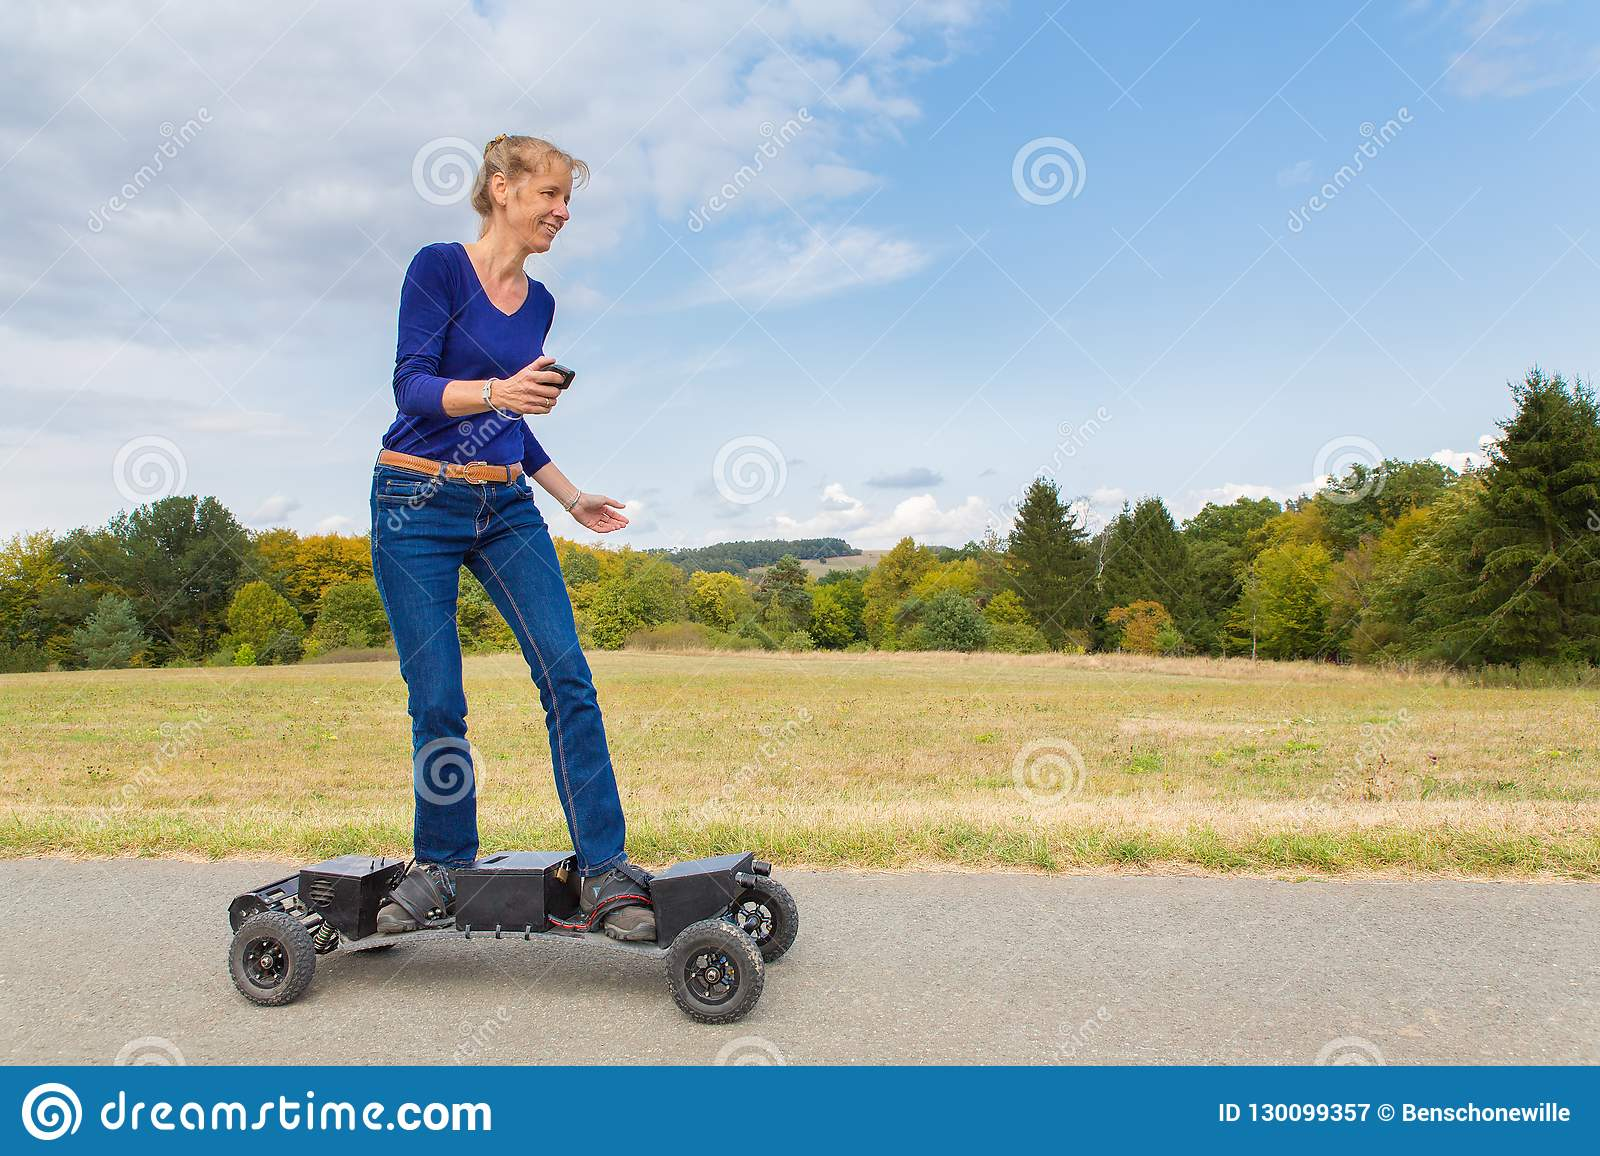 Dutch woman drives electric mountainboard in nature